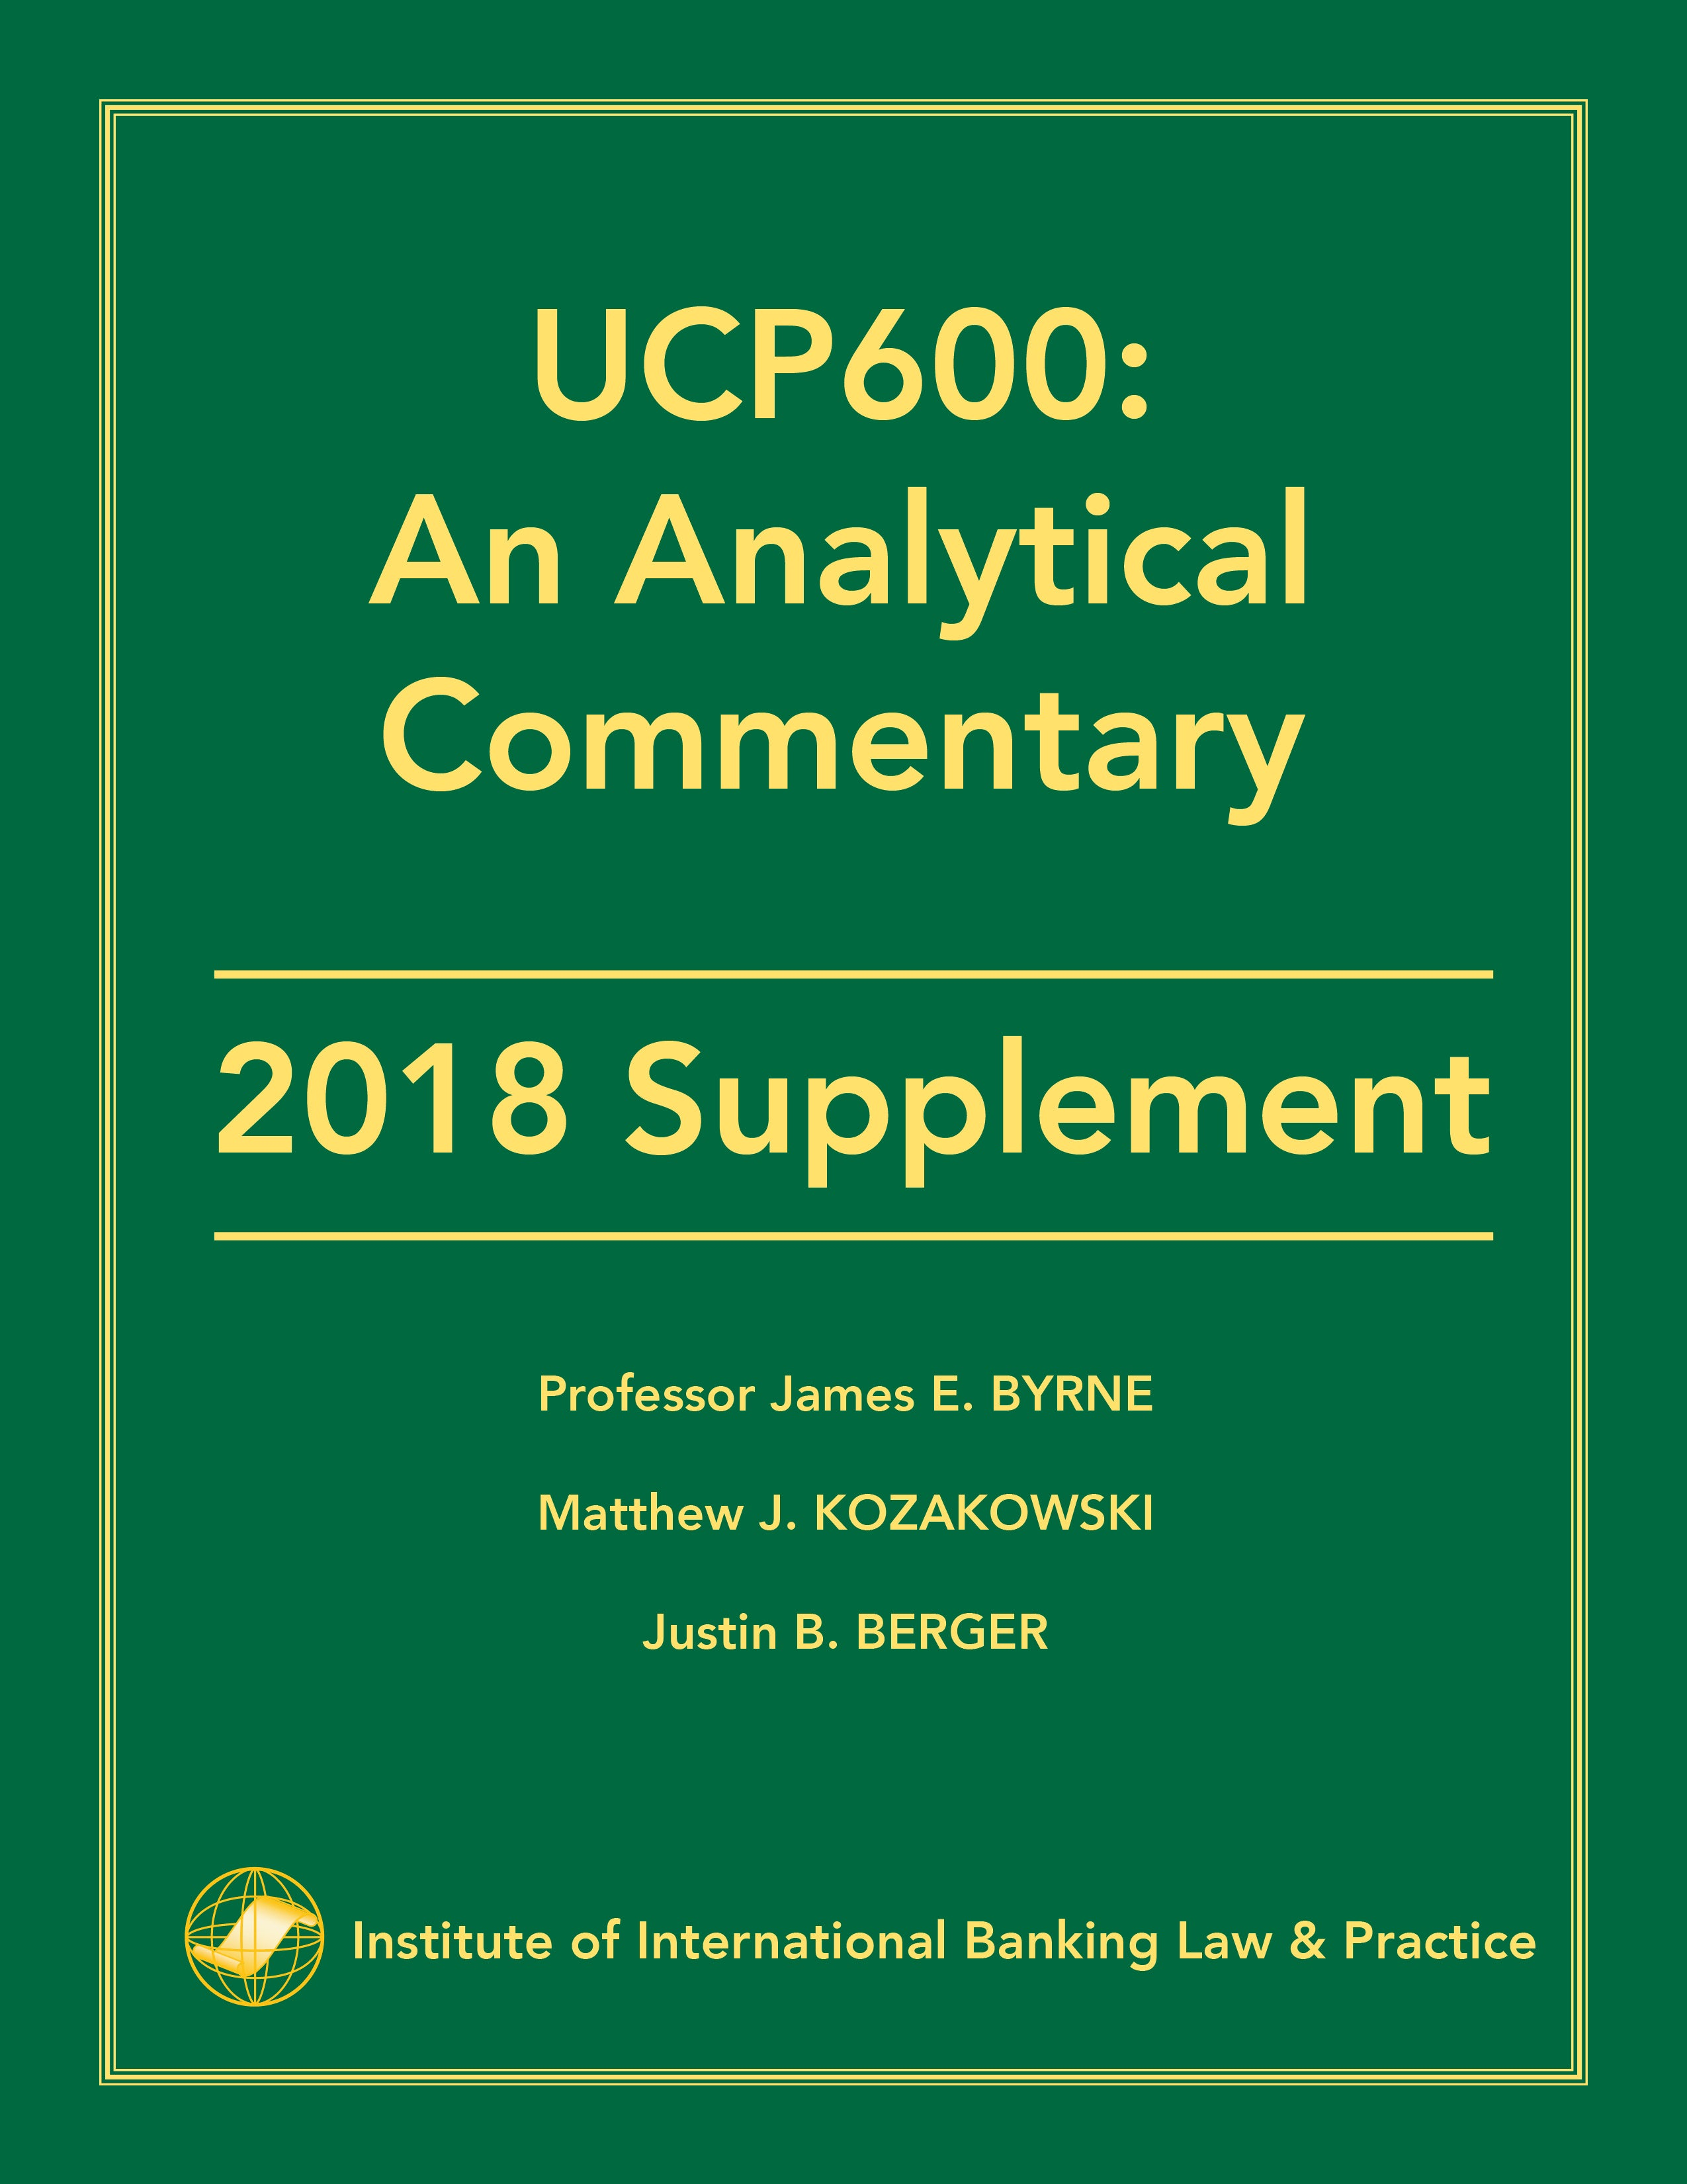 UCP600 Analytical Commentary 2018 Supplement